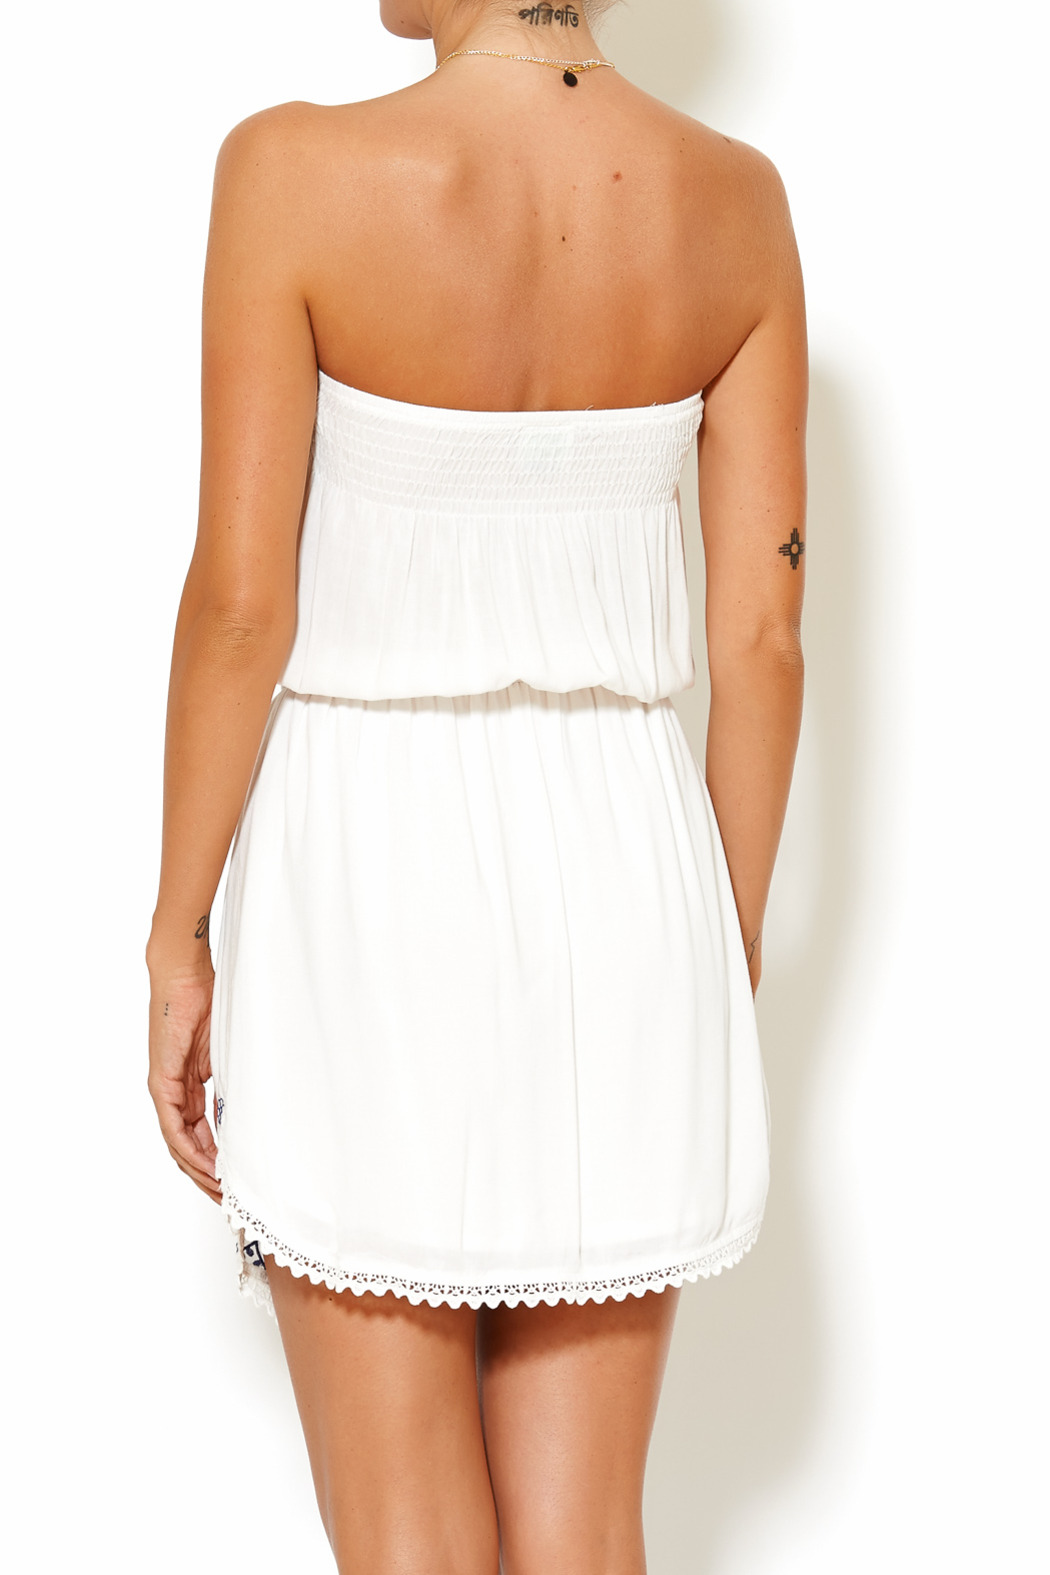 y&i clothing boutique Embroidered Tube Dress - Back Cropped Image